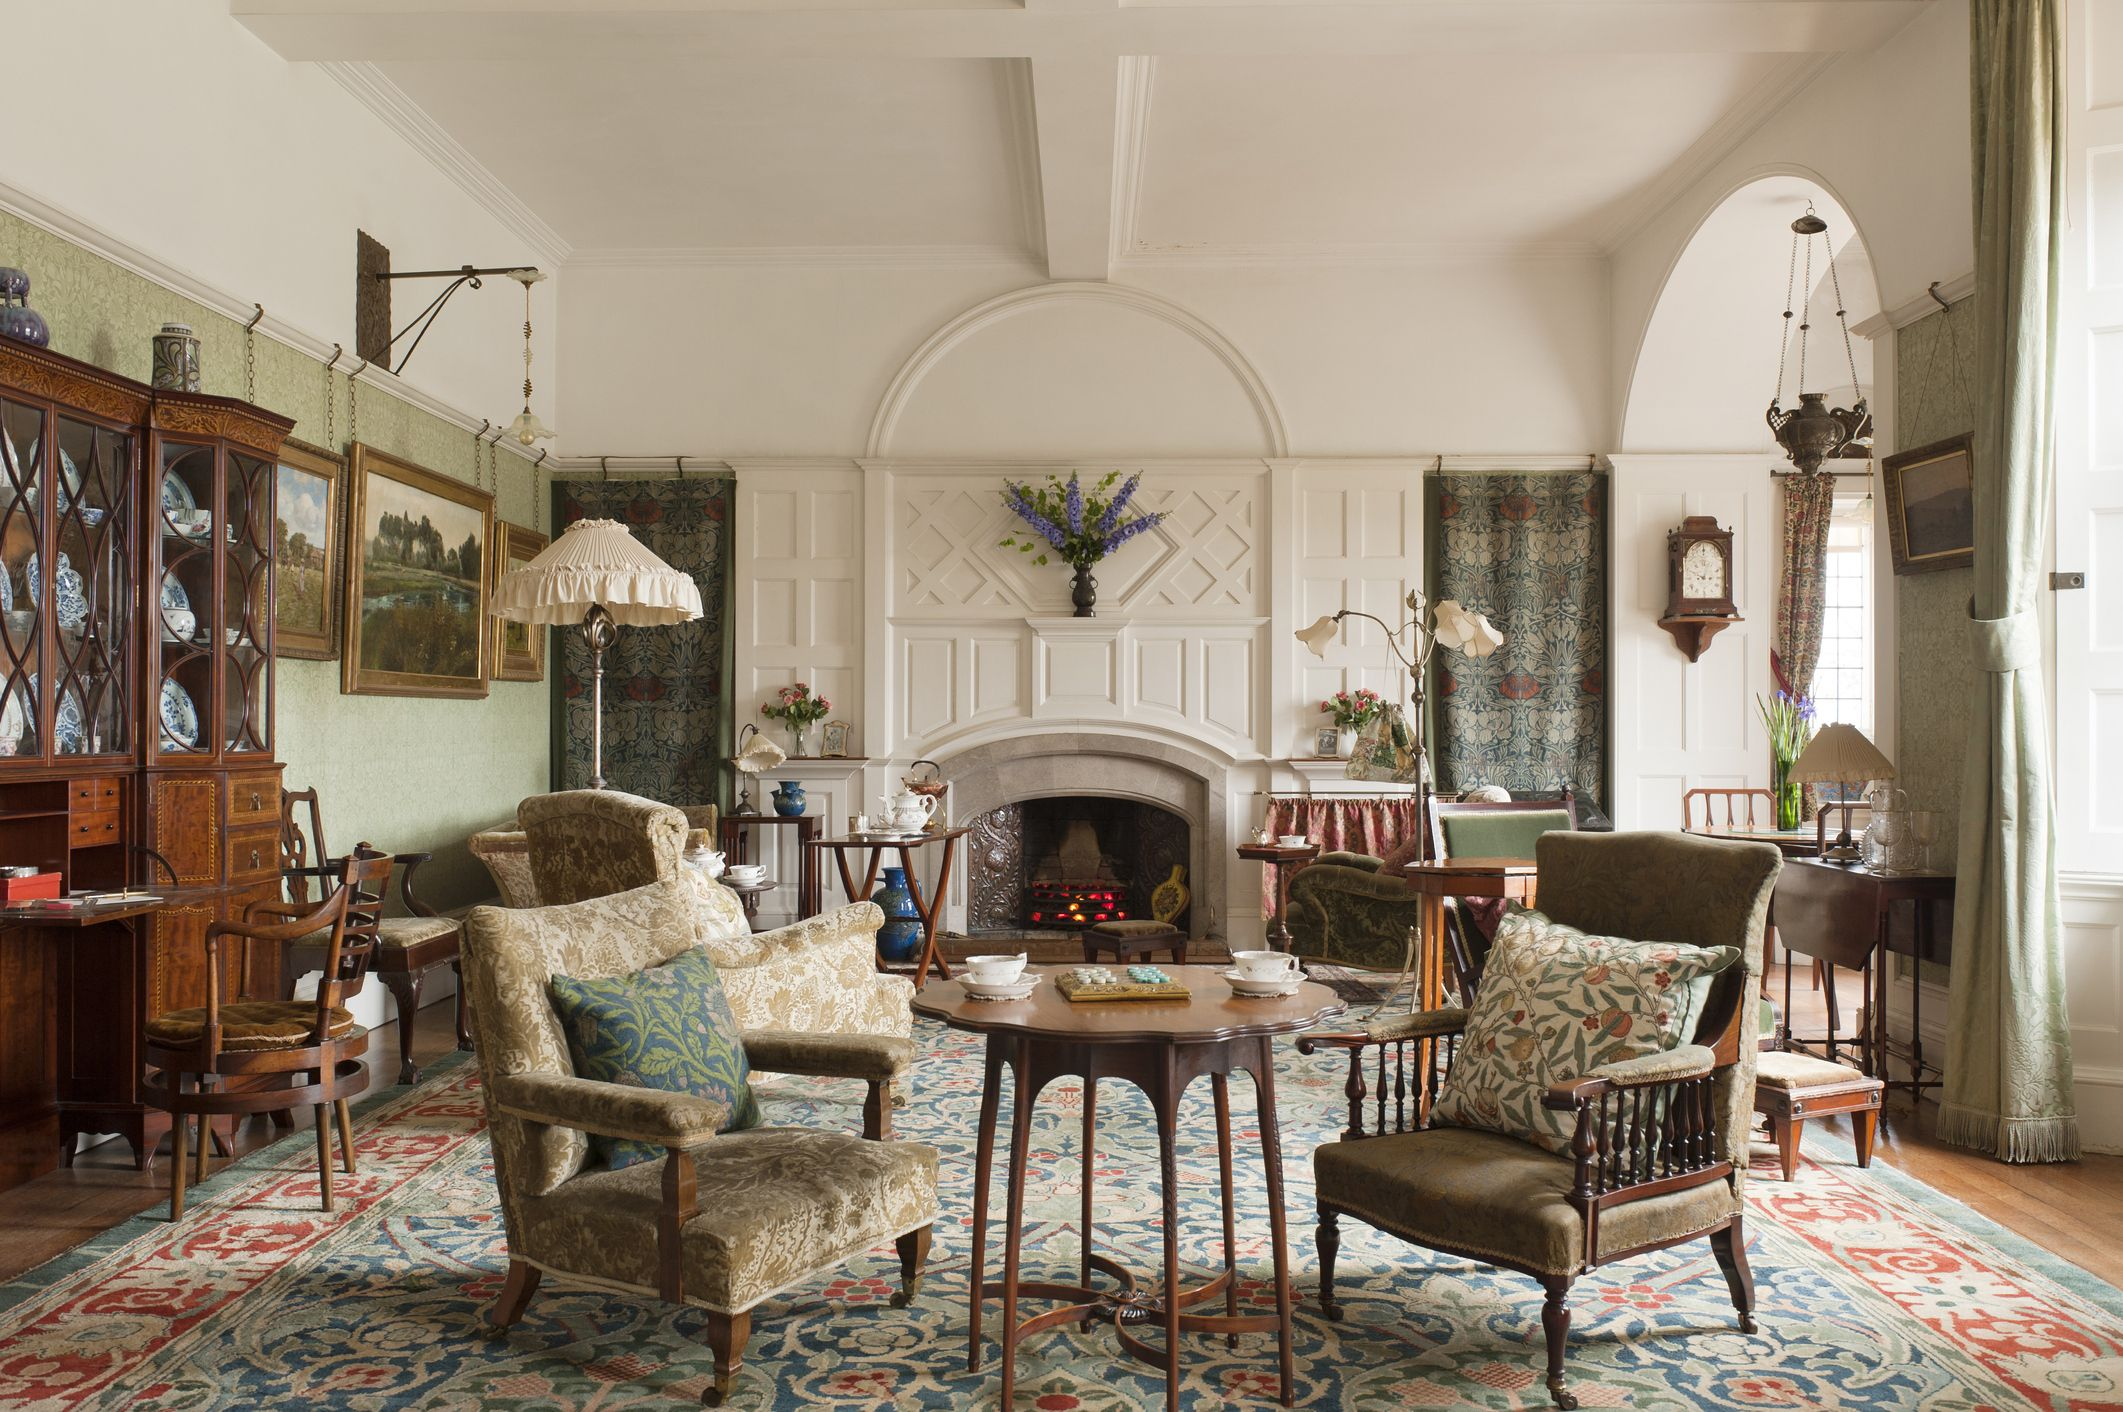 Victorian Furniture Is The MostSearched Design Style In The US